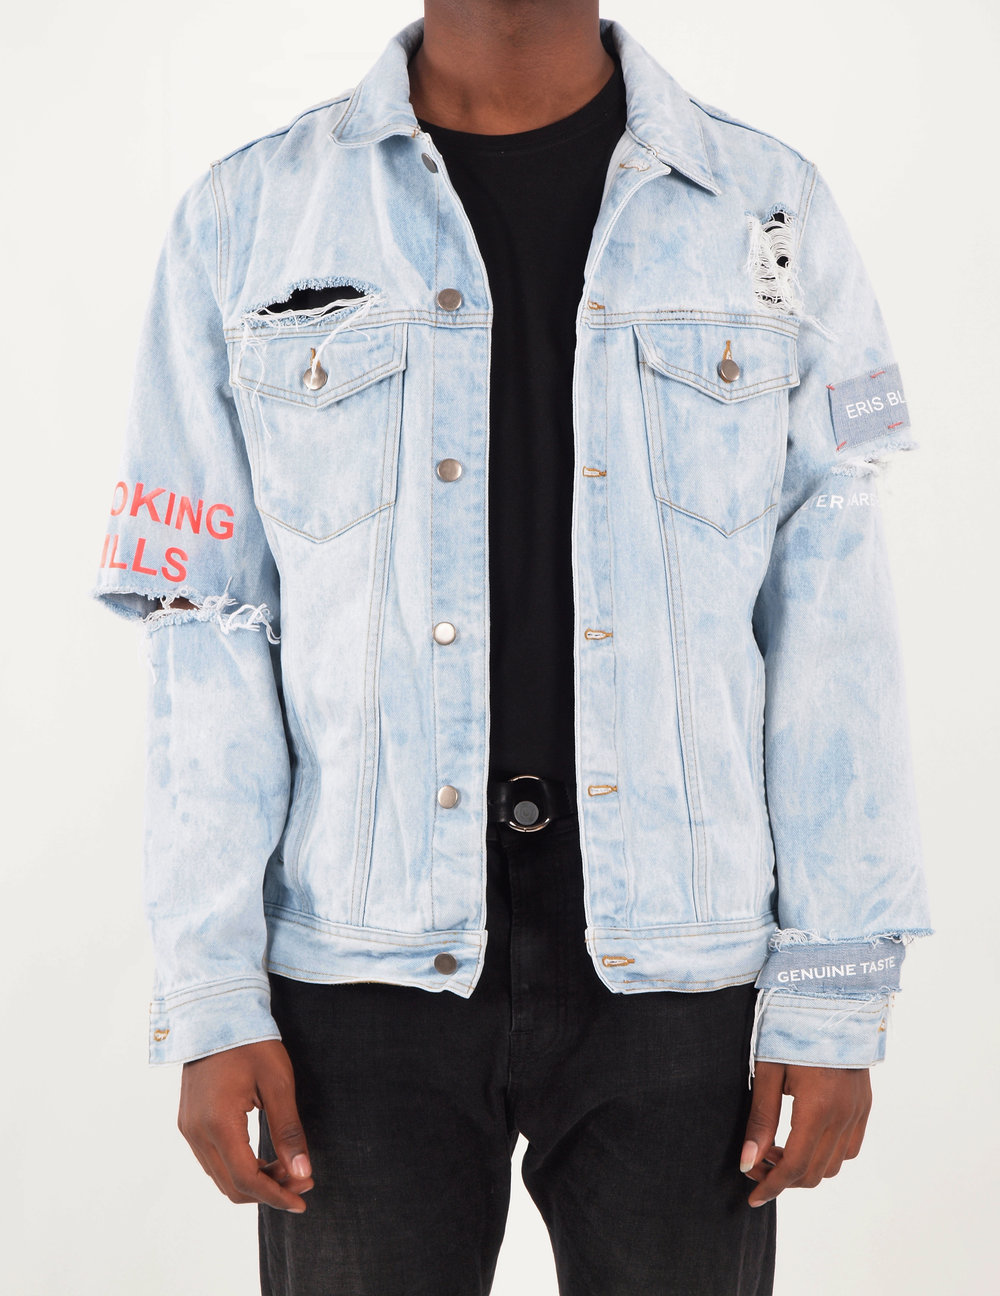 textured blue denim jacket.jpg